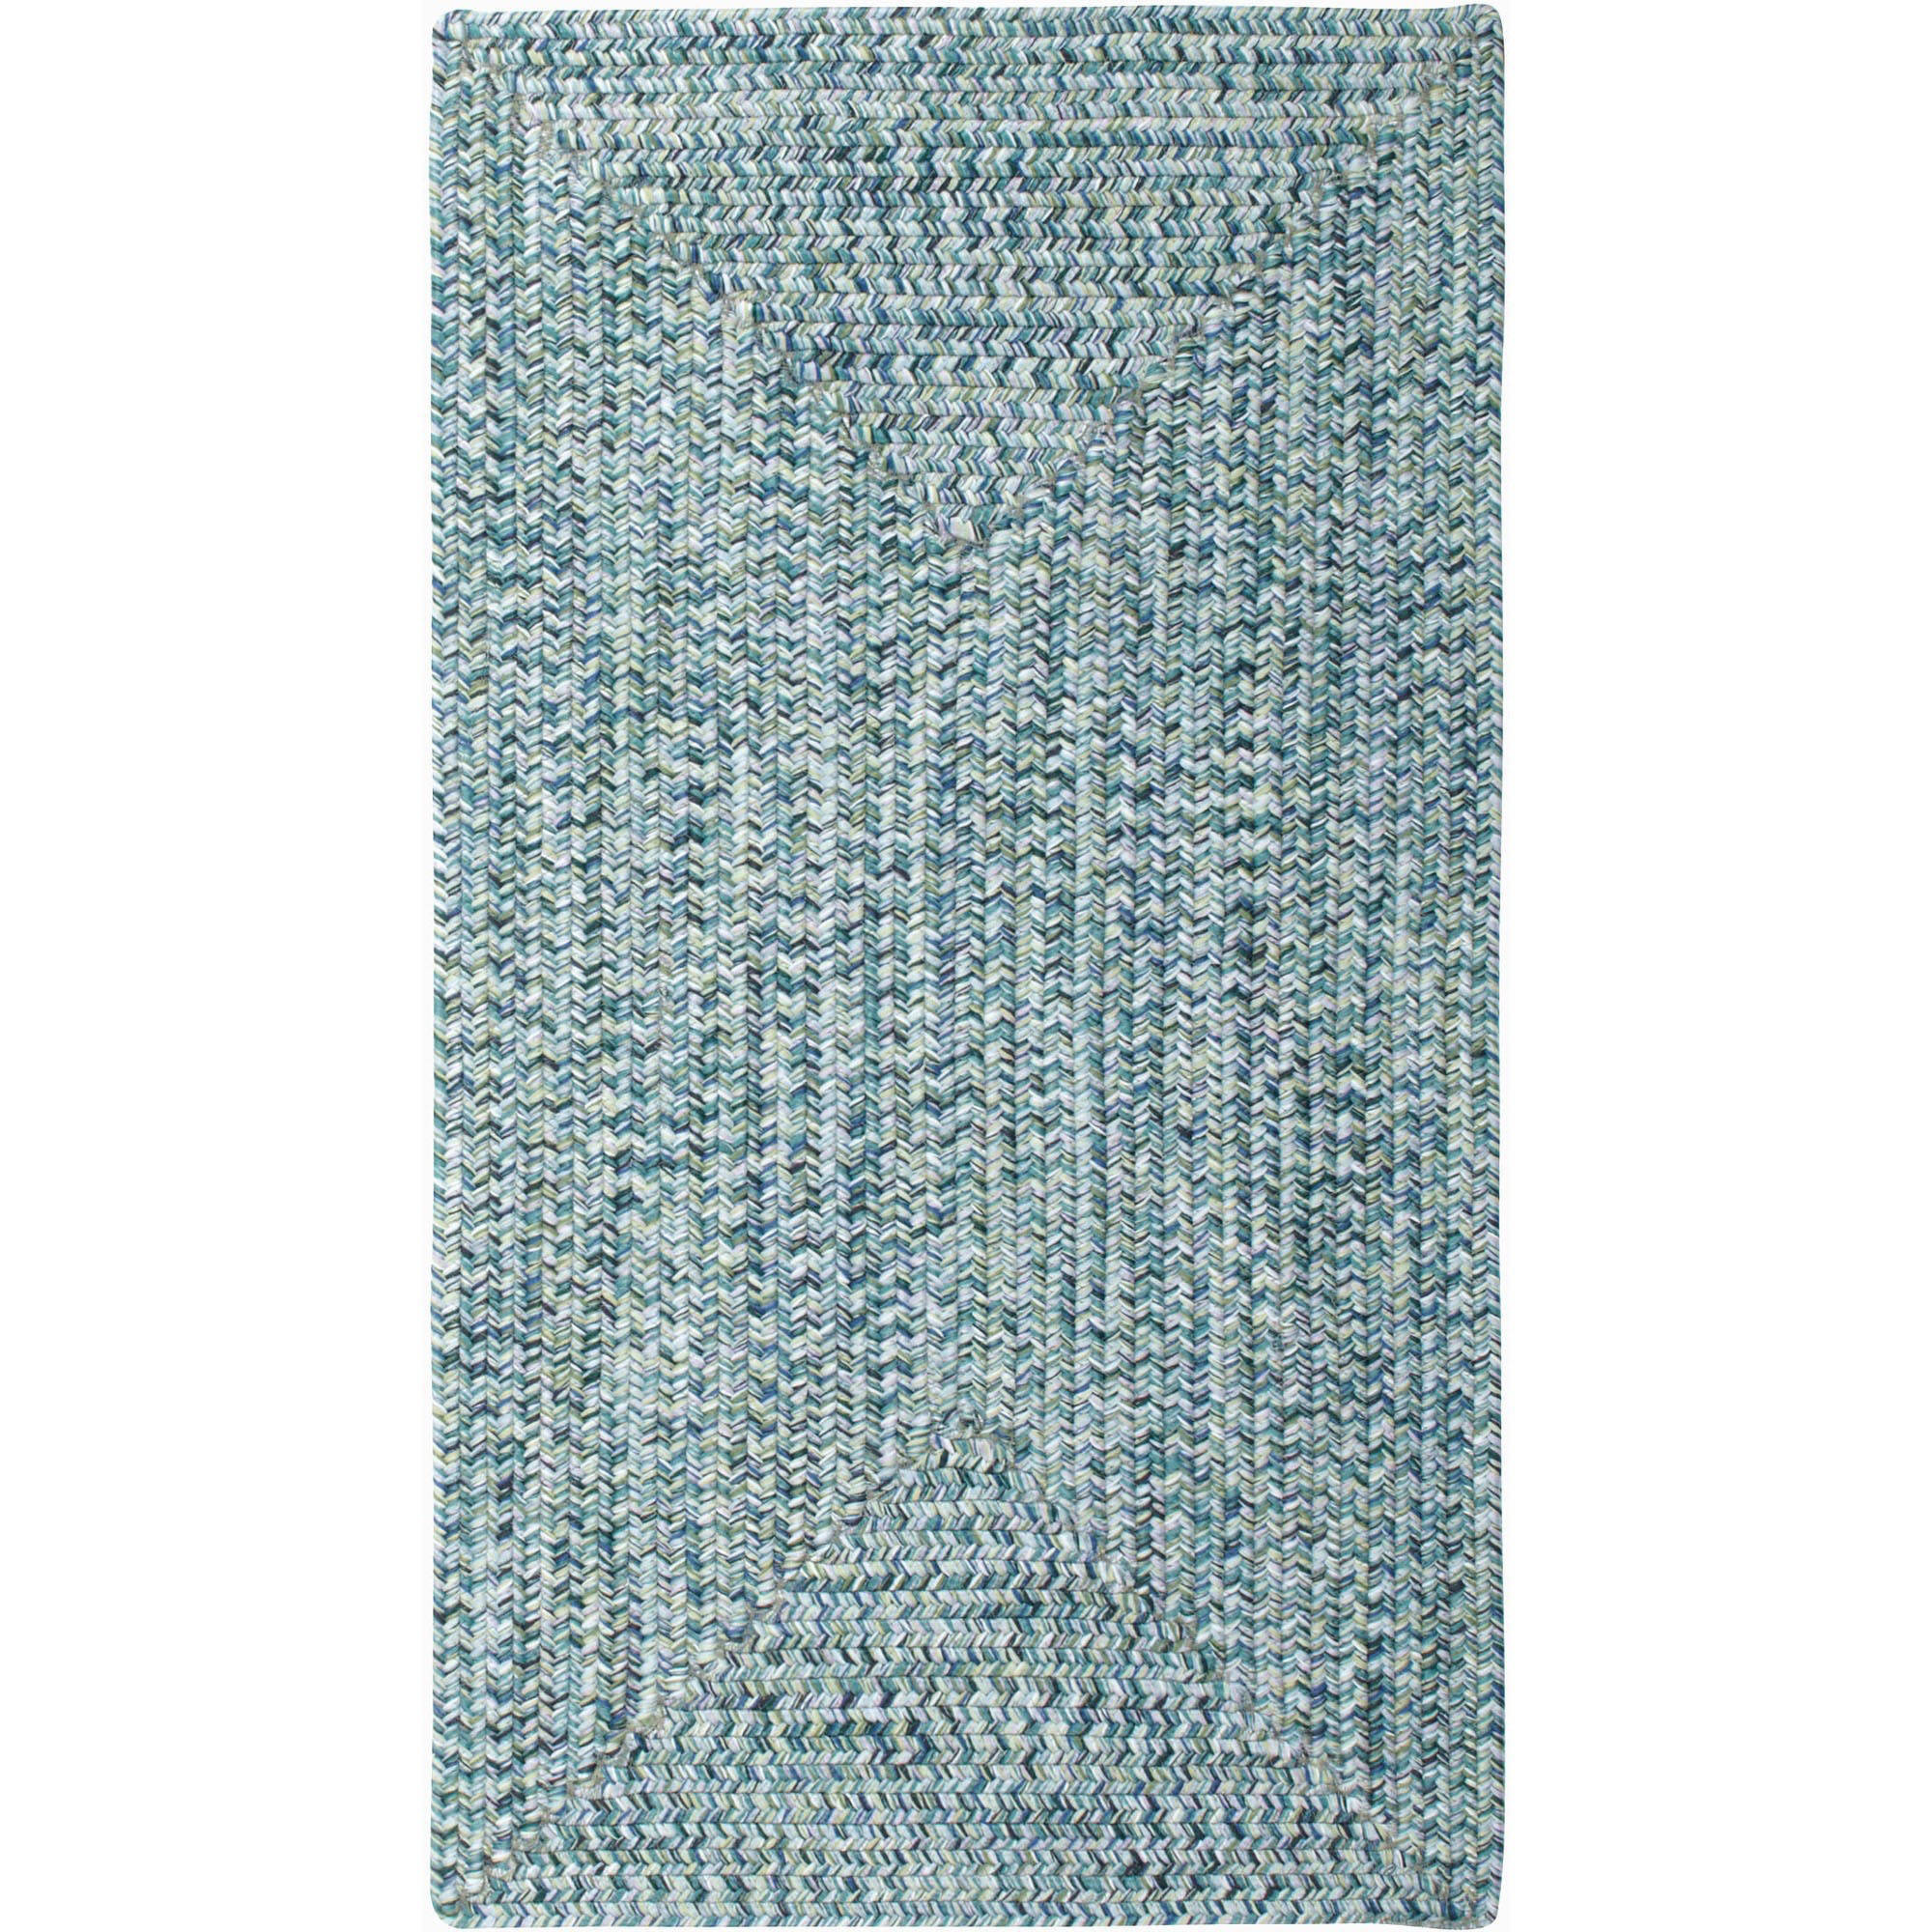 Sea Pottery Concentric Braided Area Rug